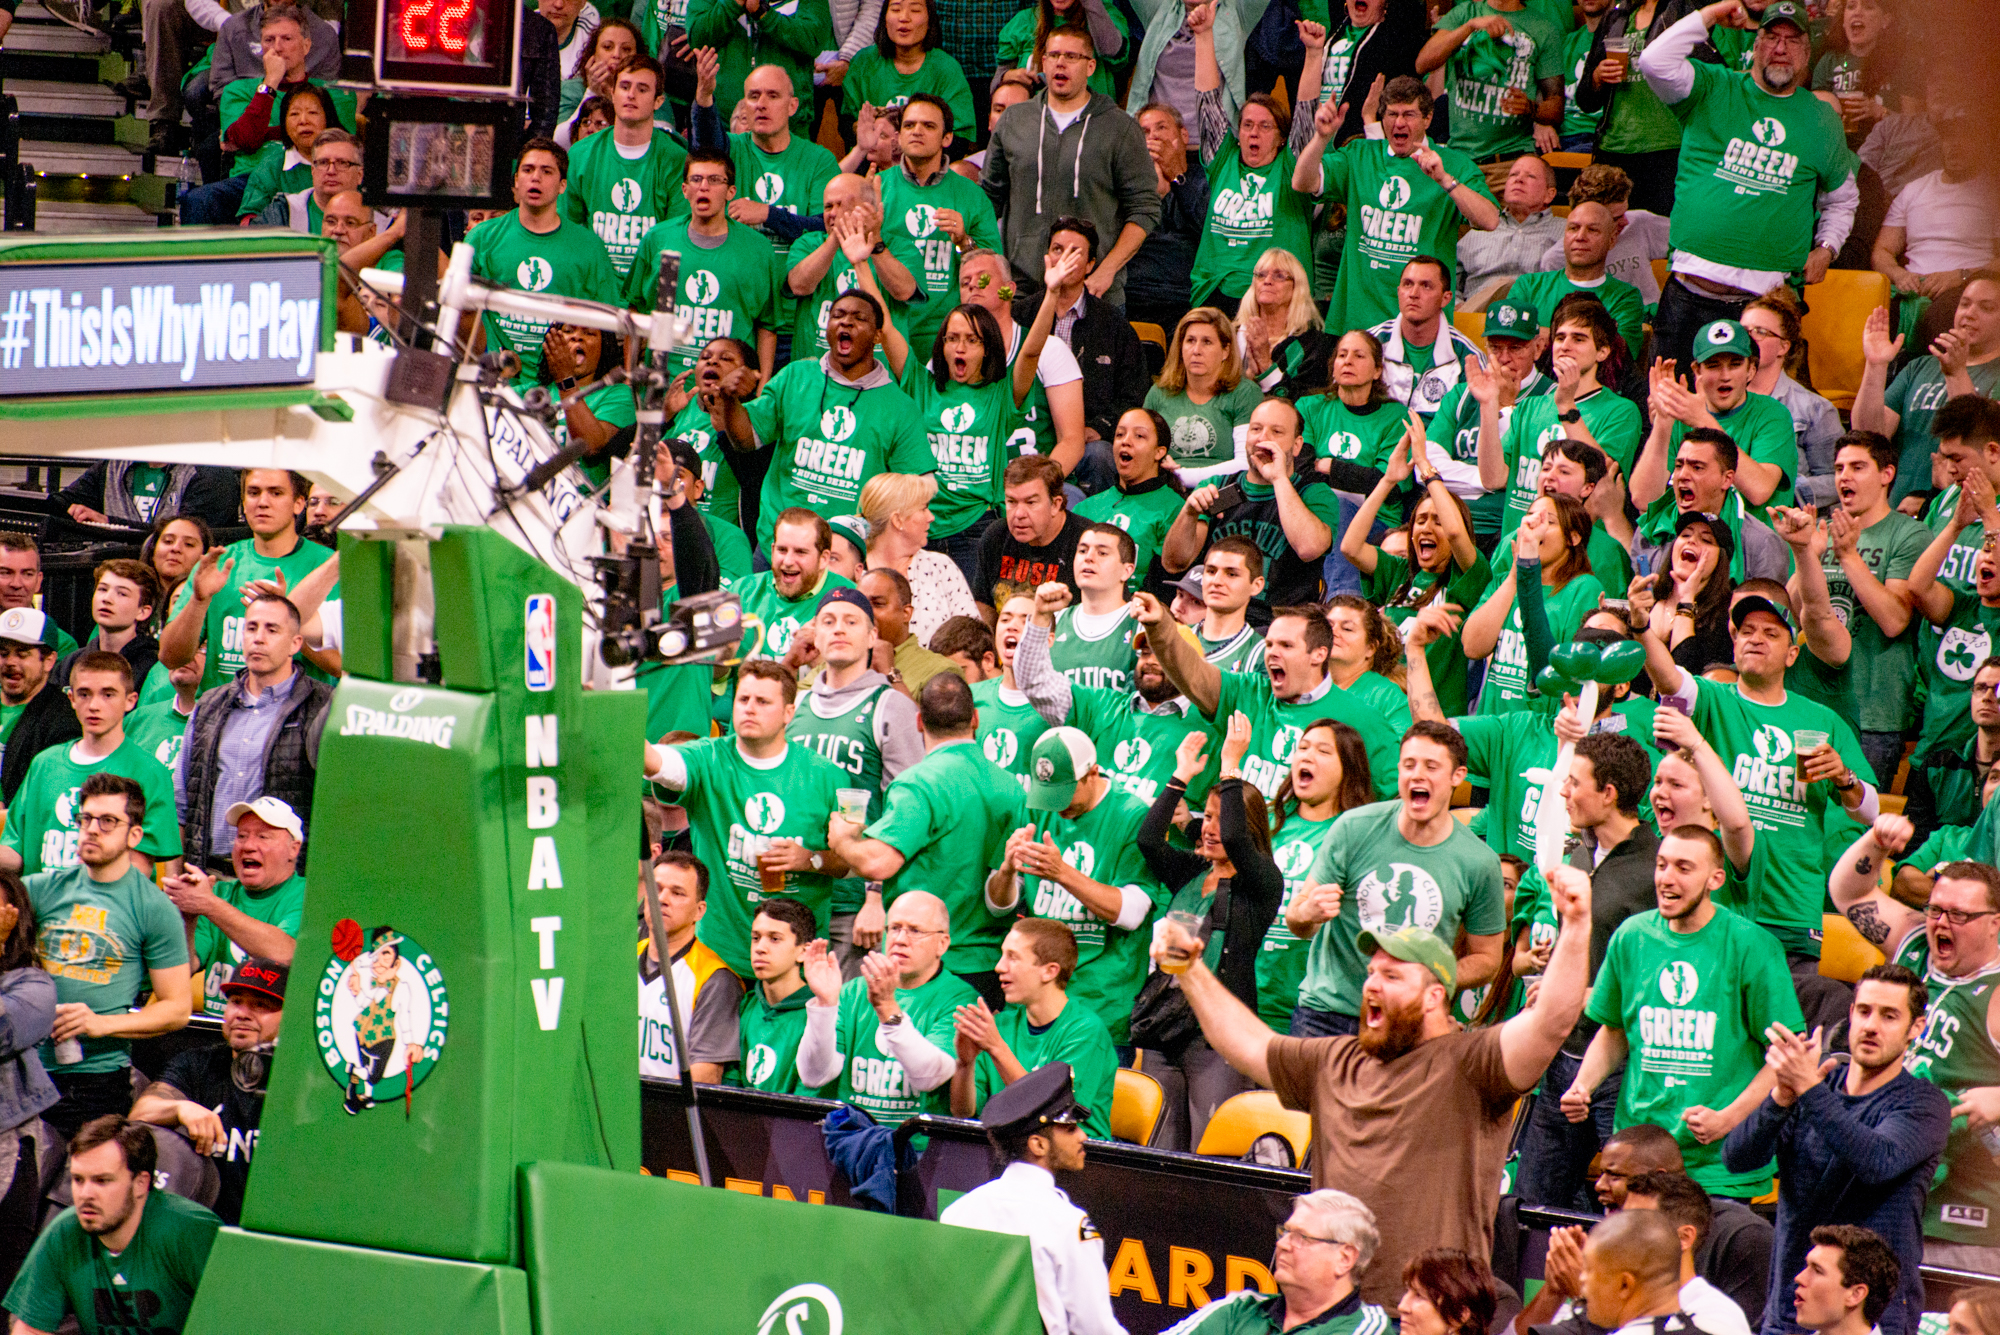 Celtics_Playoff_042916-1124.jpg